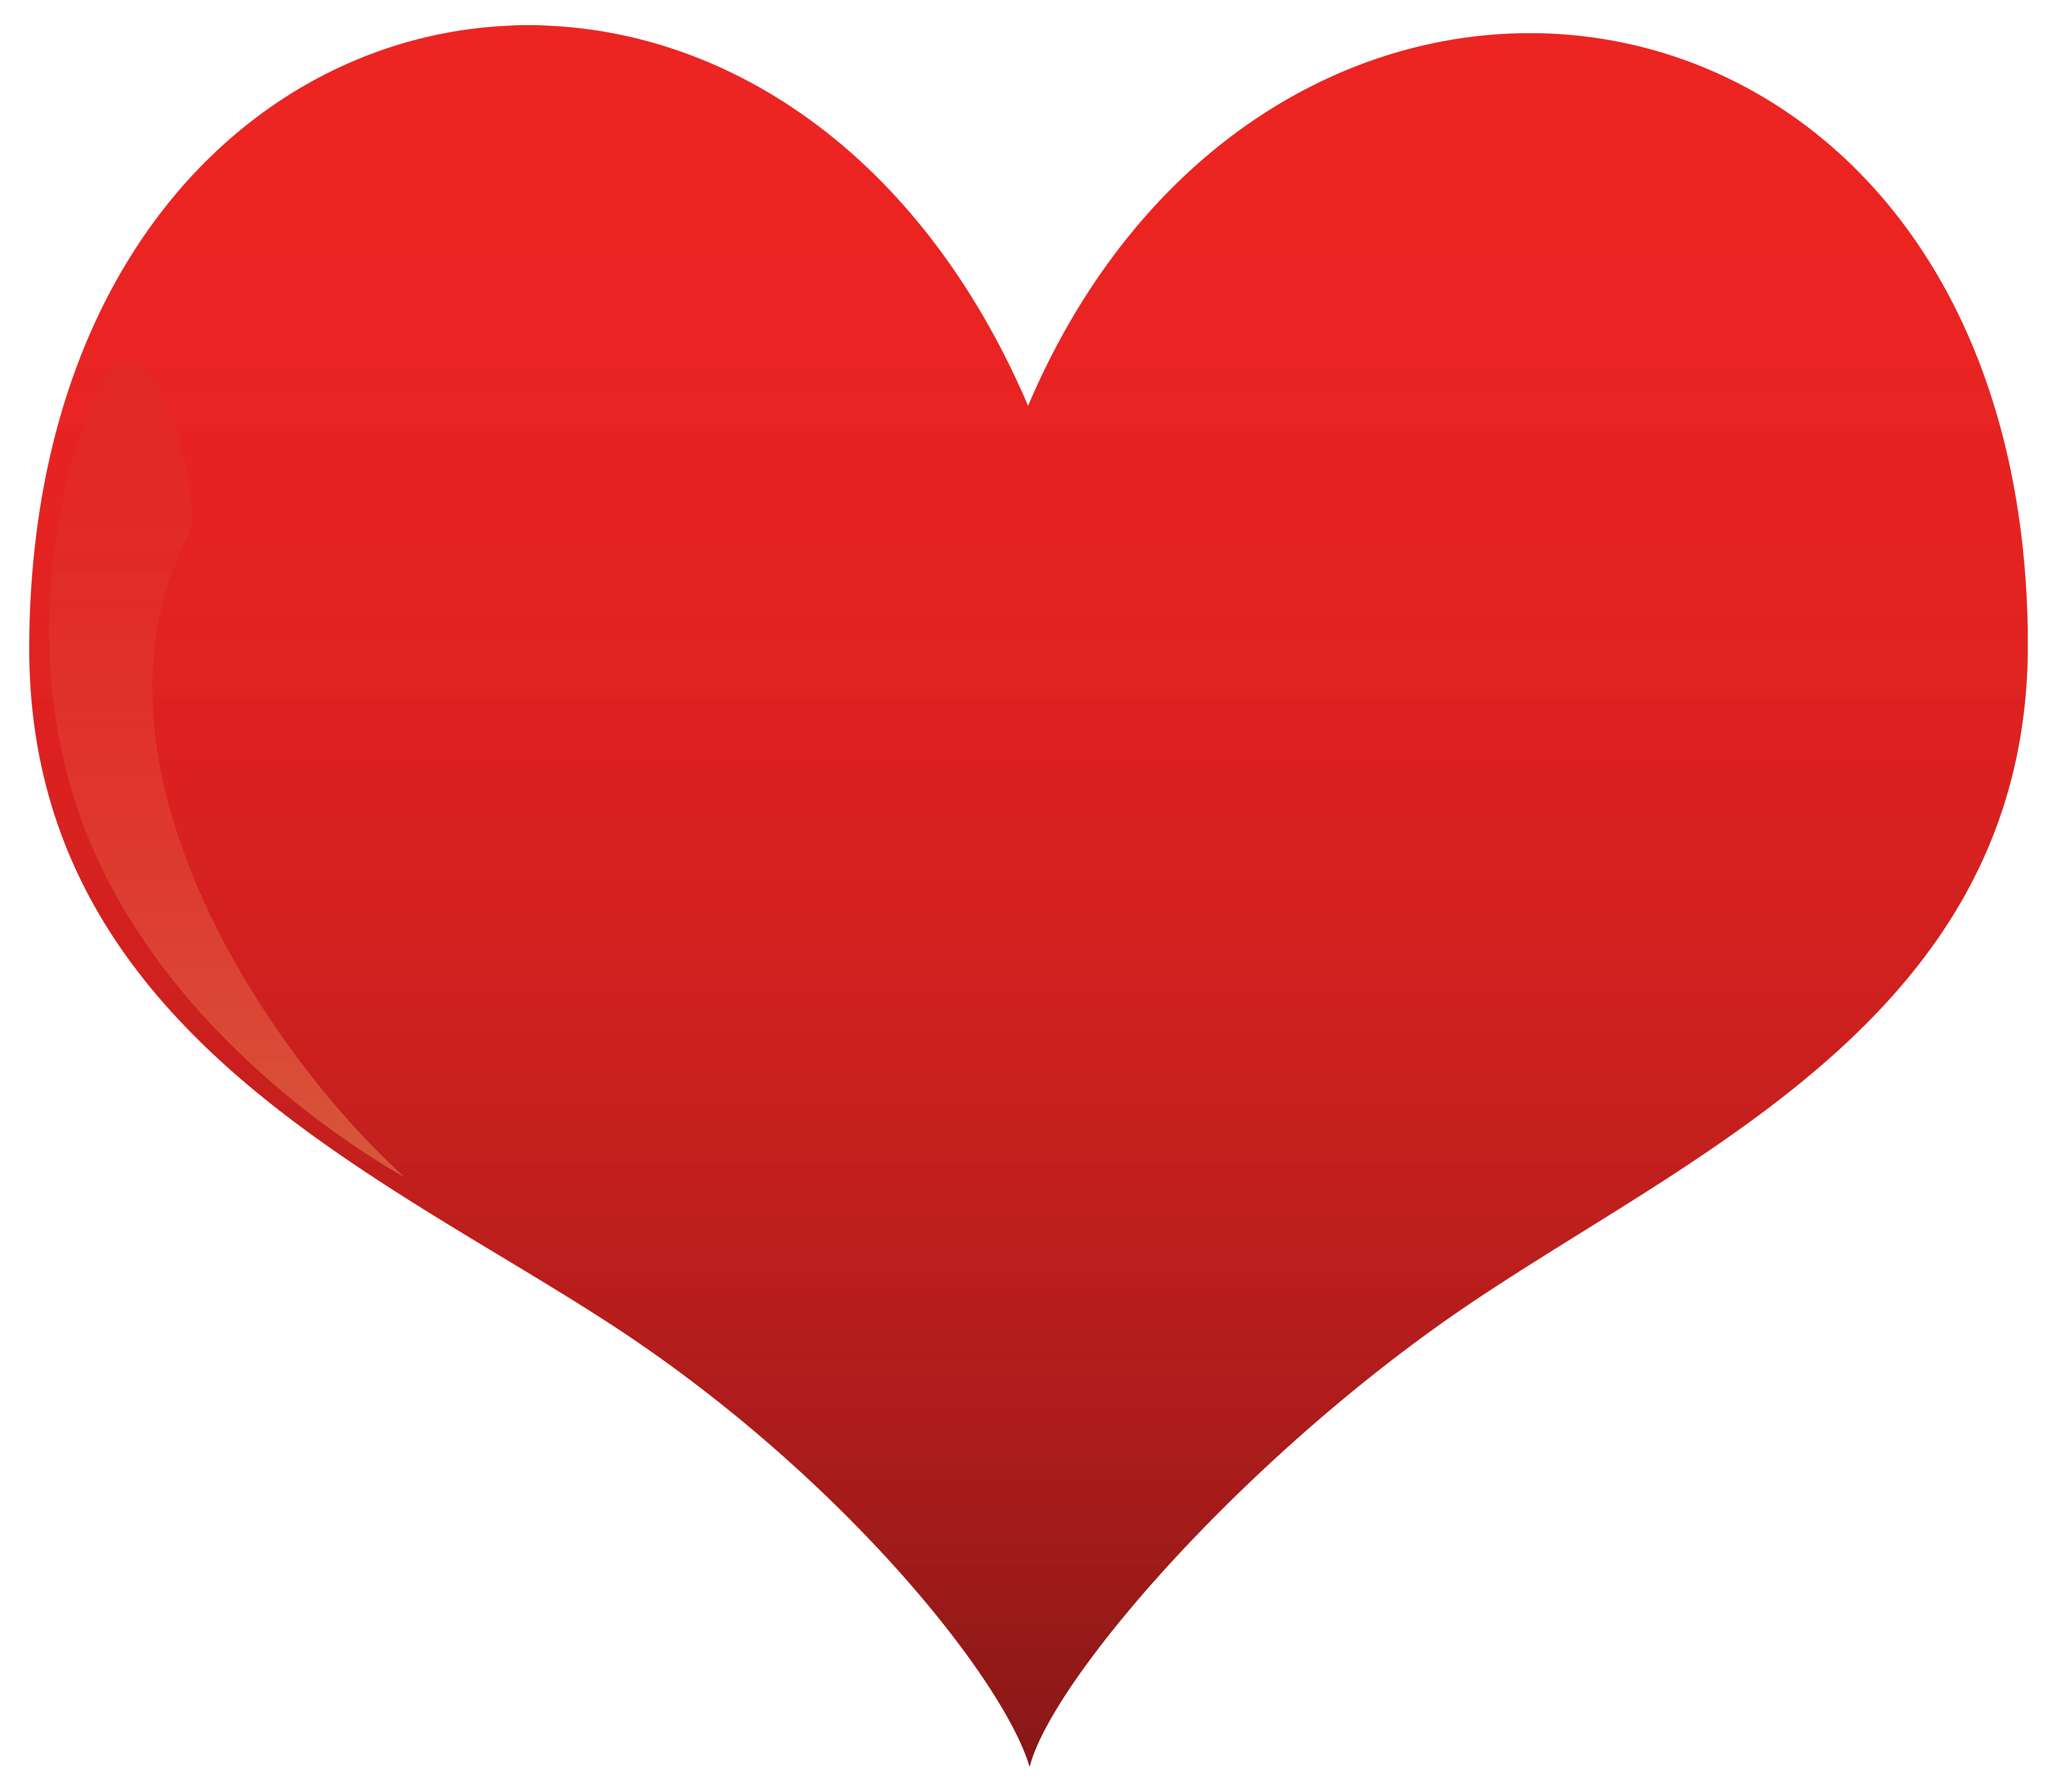 Hearts clipart png. Classic heart best web